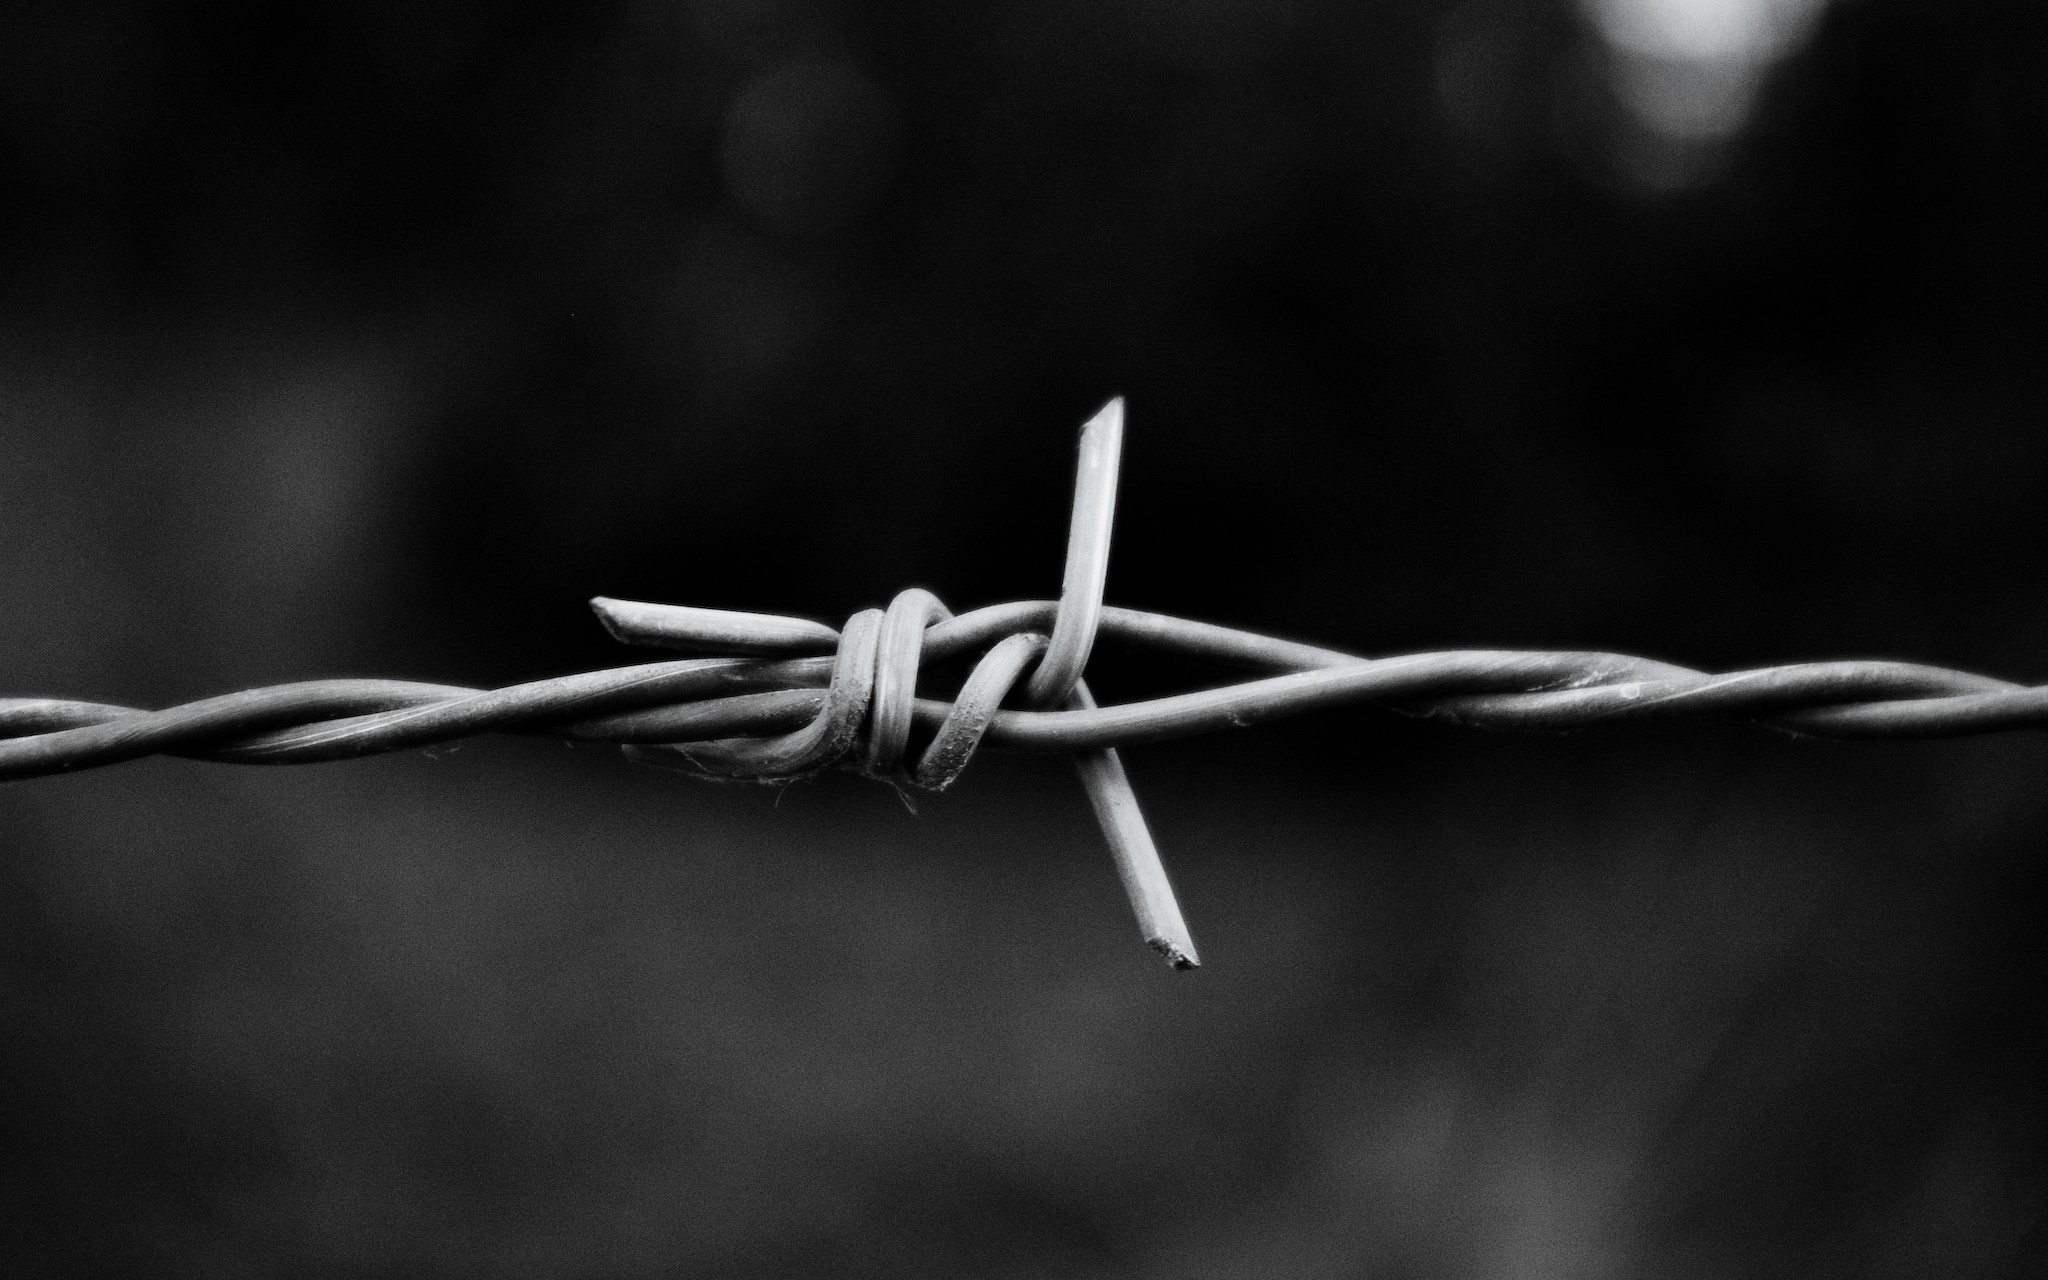 monochrome barb wire wallpaper 54327